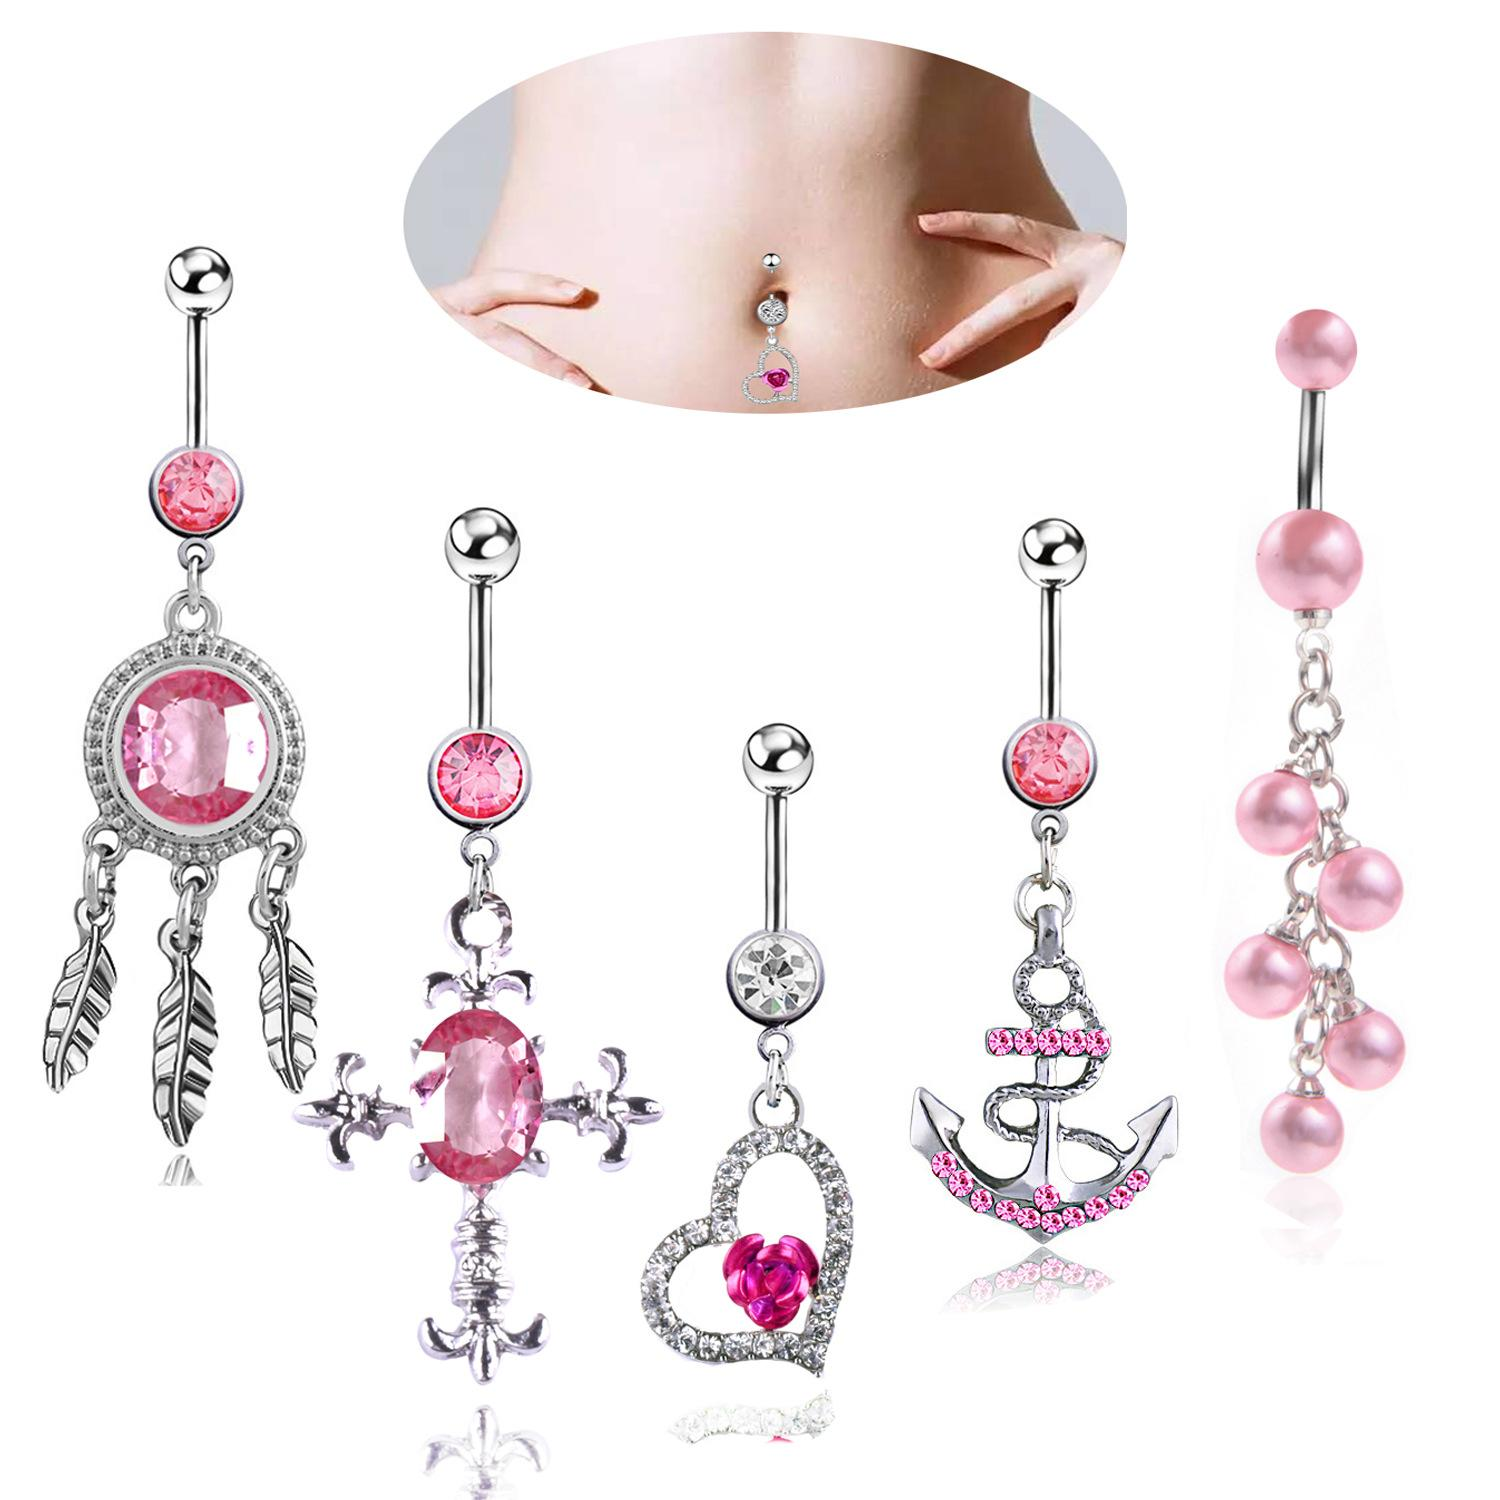 Home Fashion Hot Sexy Factory Price Belly Ring Button Body Jewelry Simple Zircon Earrings Ear Nail Belly Button Rings Navel Piercing With The Most Up-To-Date Equipment And Techniques